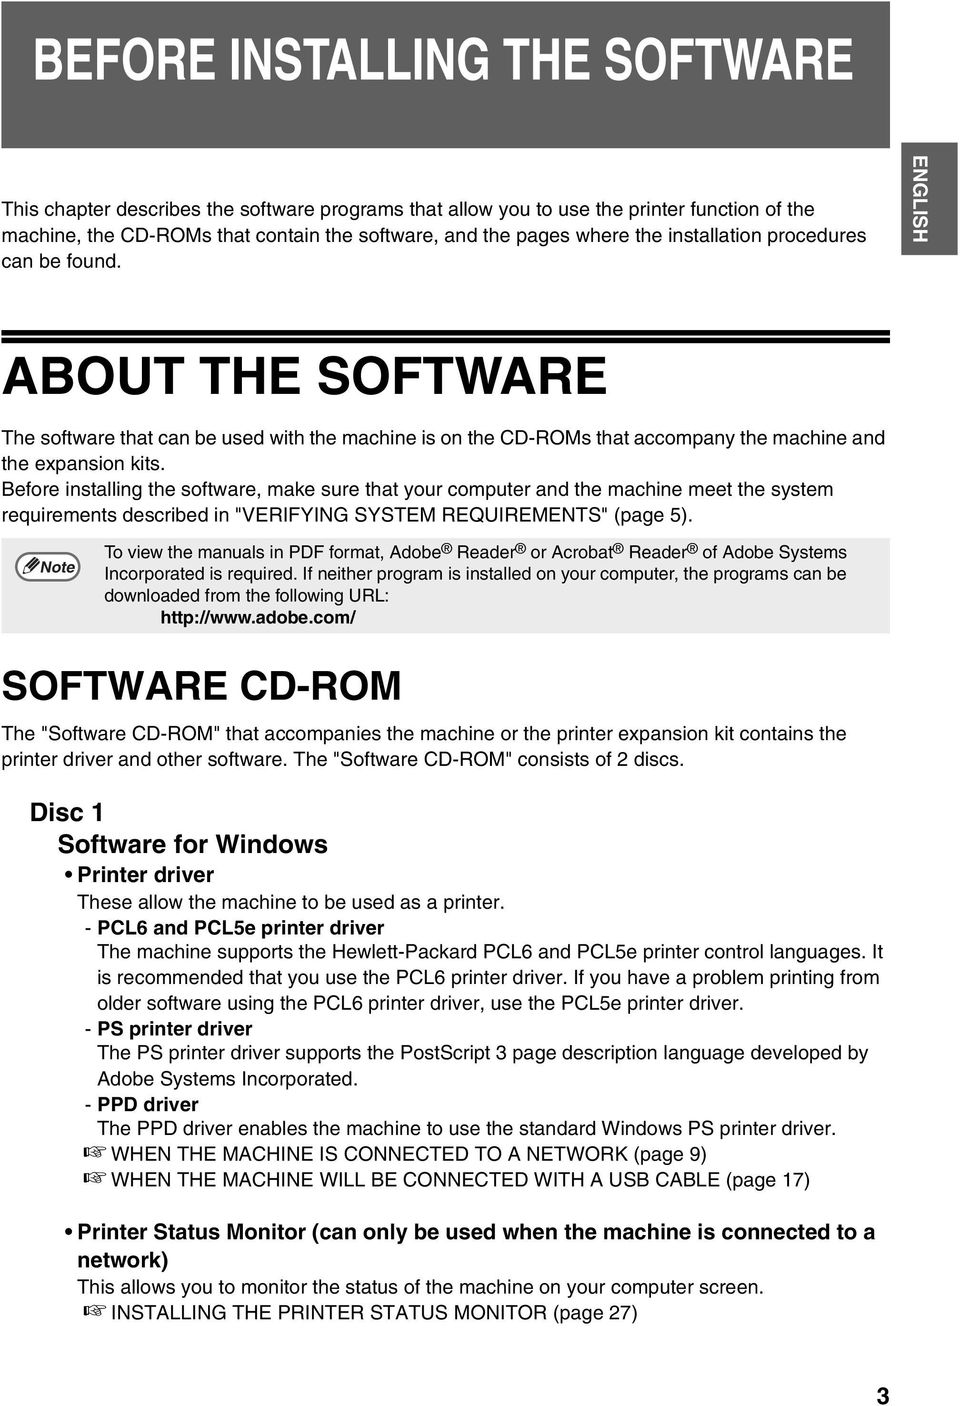 "Before installing the software, make sure that your computer and the machine meet the system requirements described in ""VERIFYING SYSTEM REQUIREMENTS"" (page 5)."